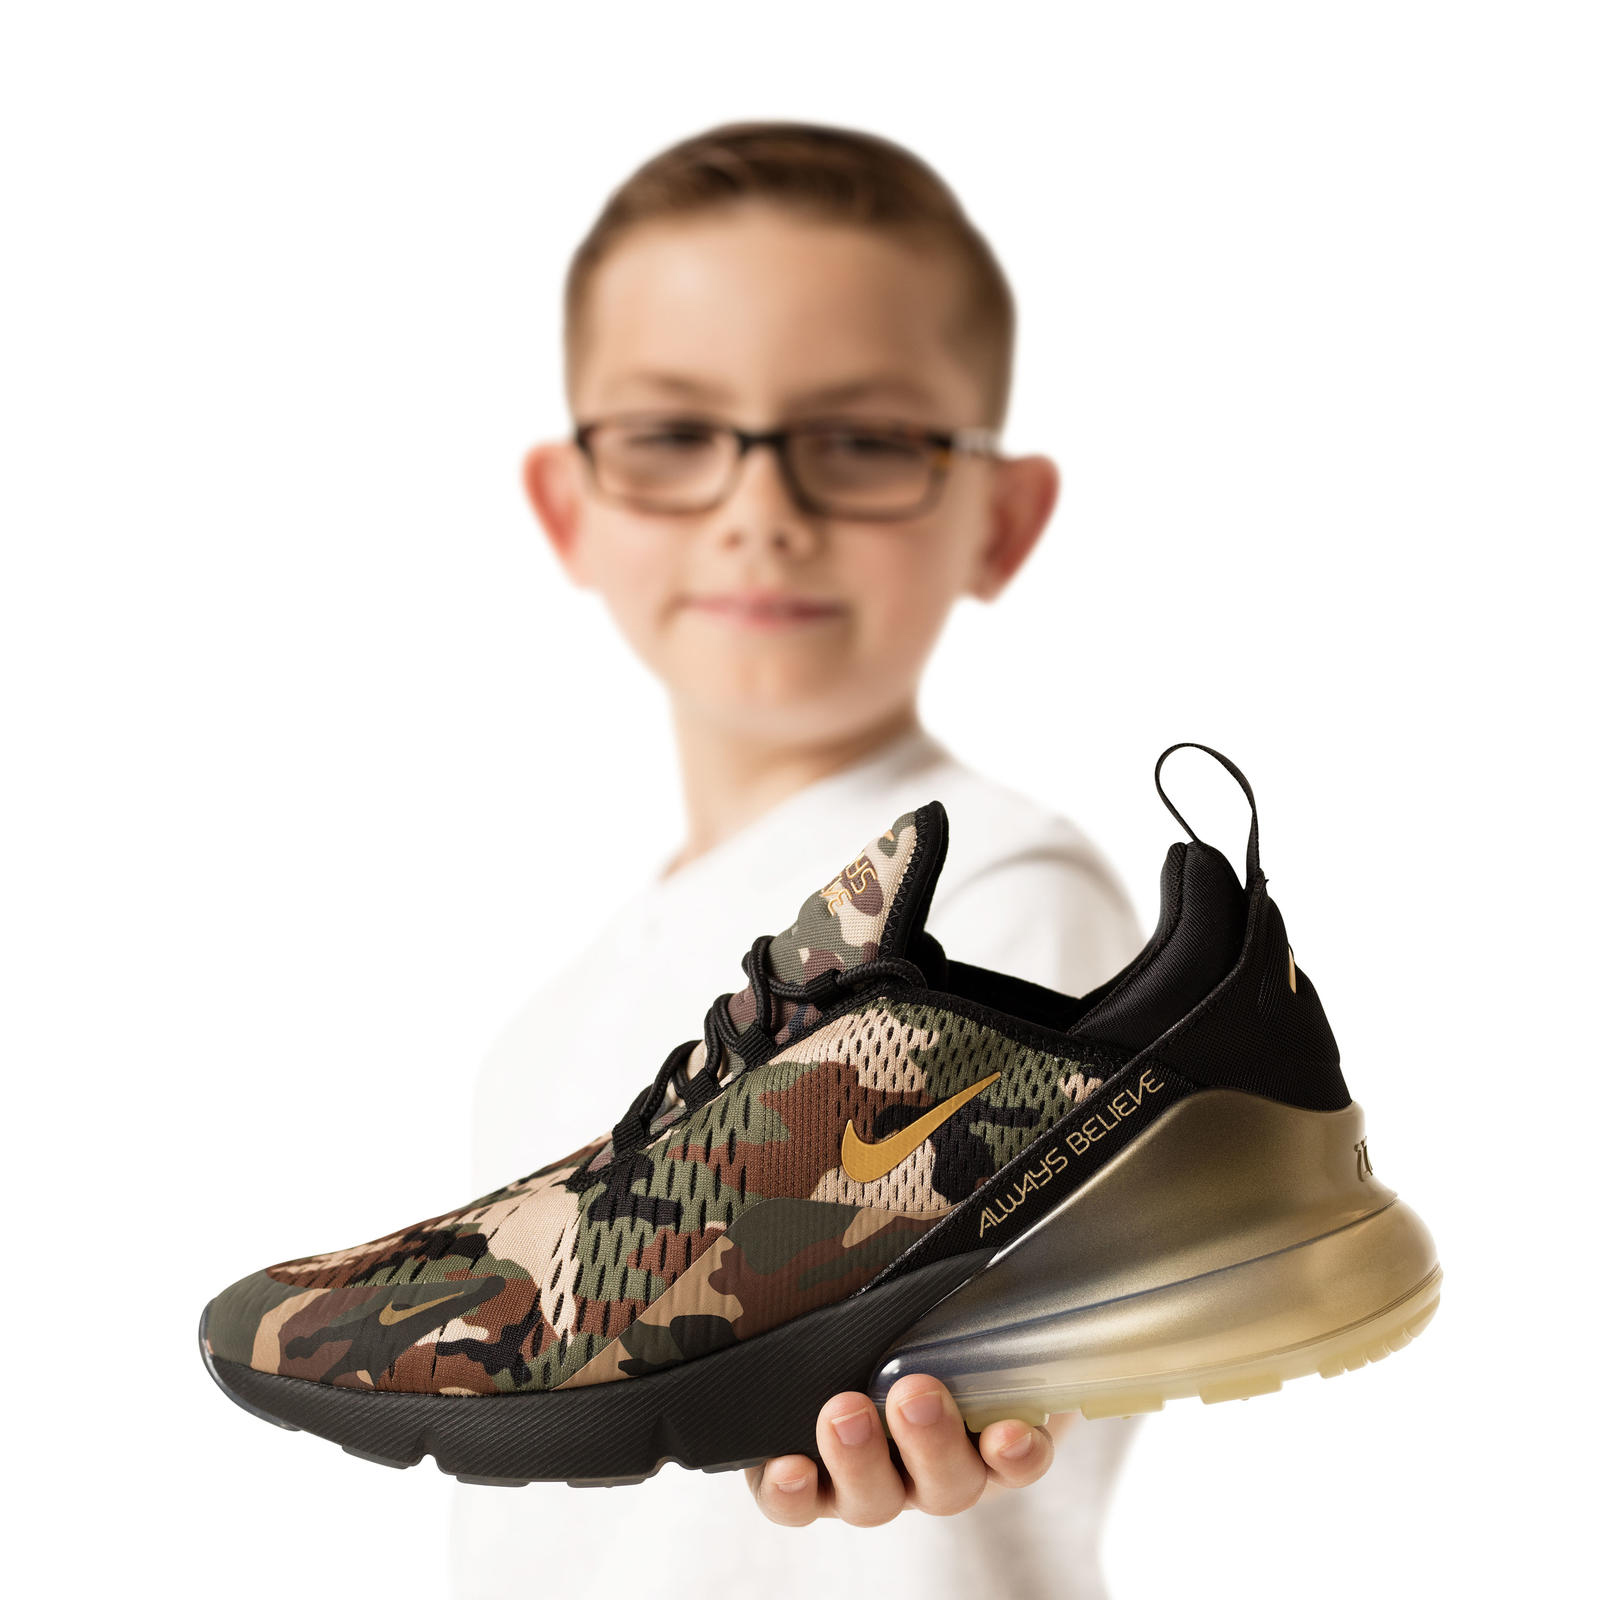 99dcbd6e19ad Doernbecher Freestyle  15 years of sole